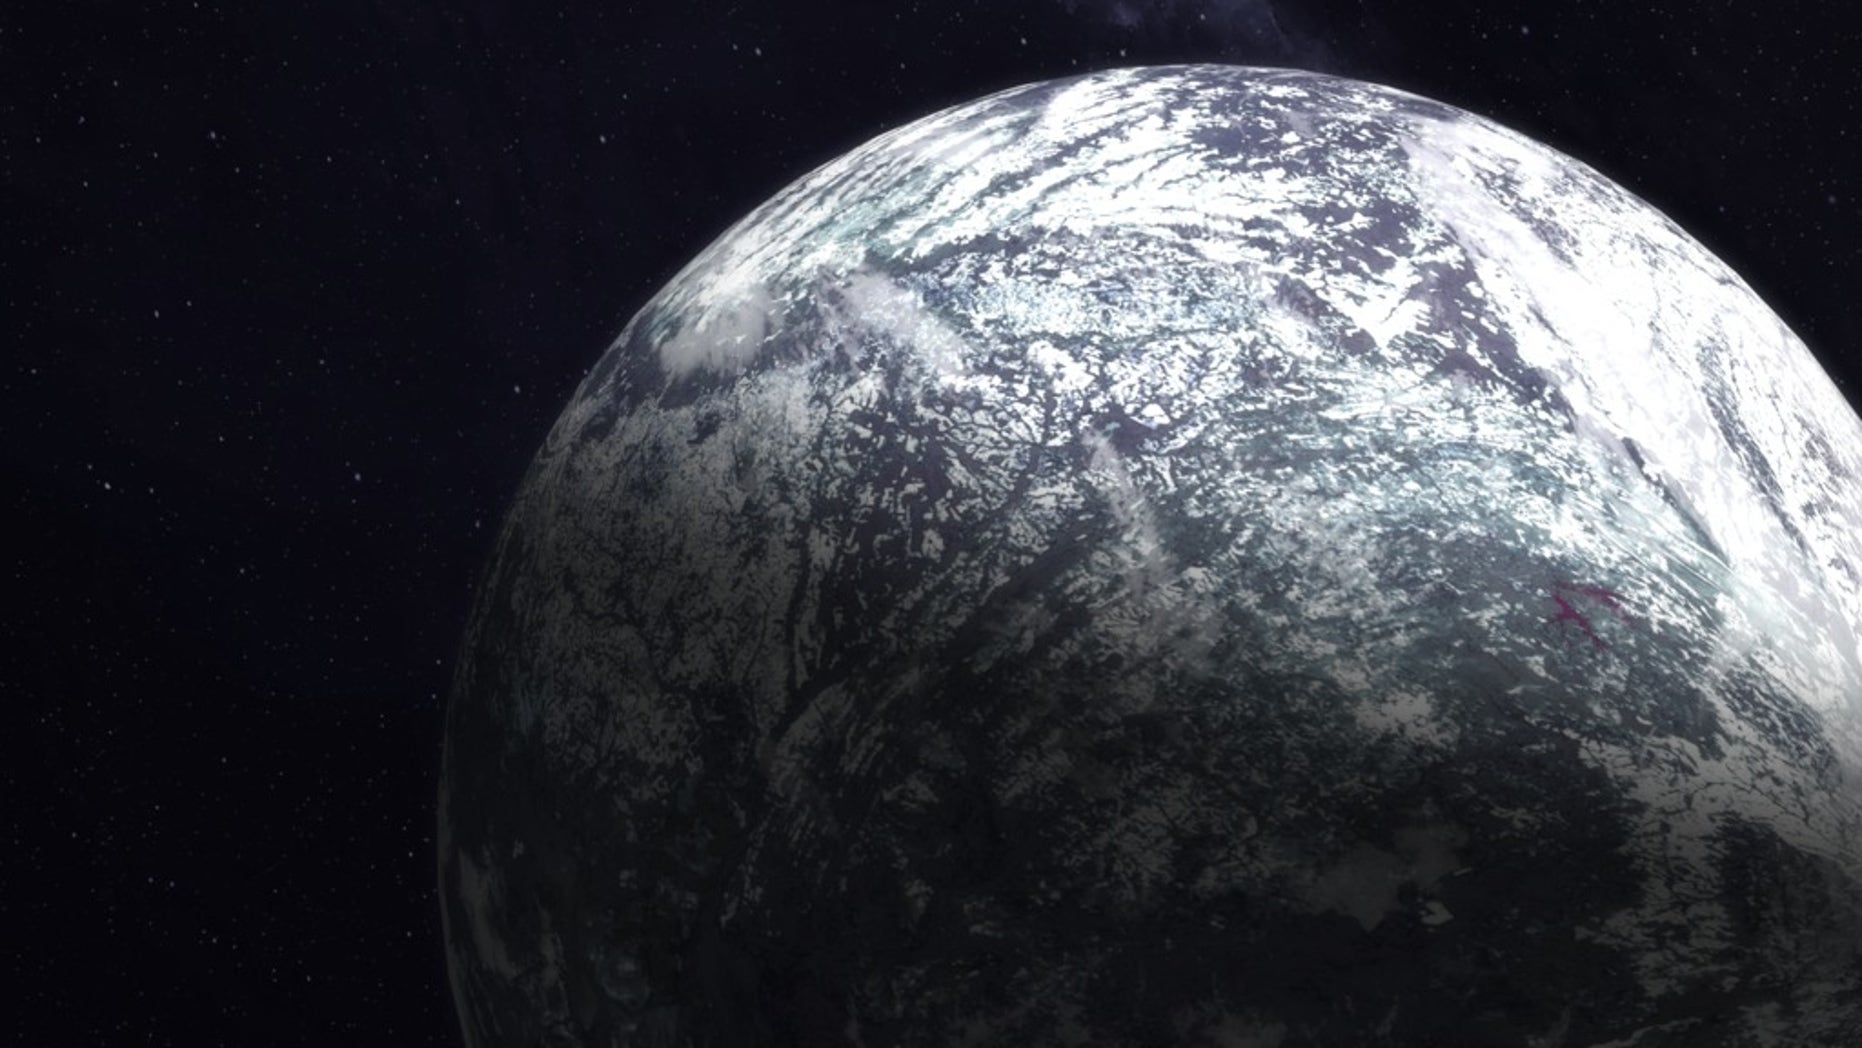 An artist's illustration of an ice- and snow-covered exoplanet.